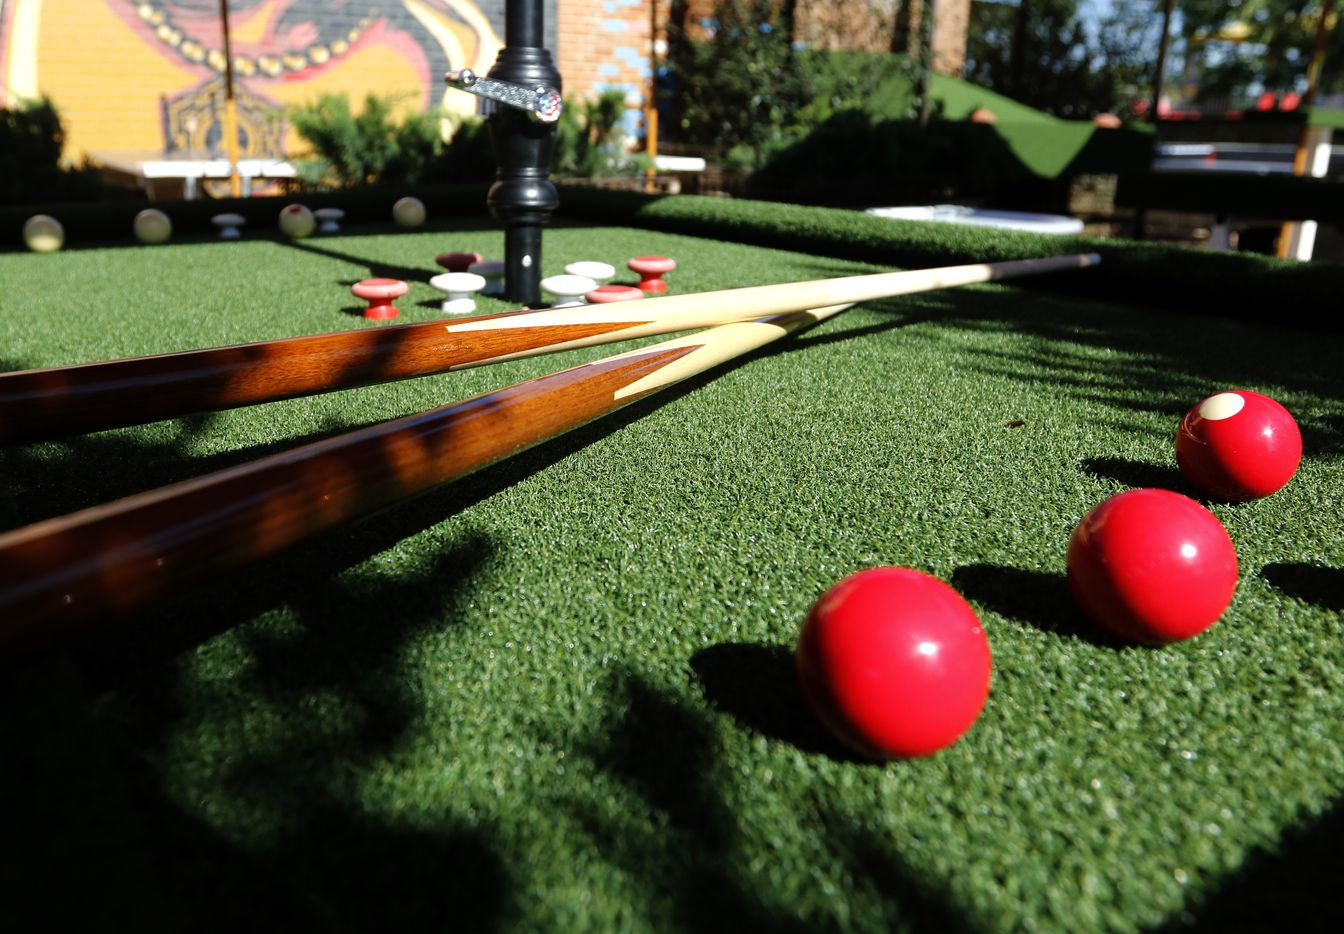 A bumper pool table on Off-Site Kitchen's patio